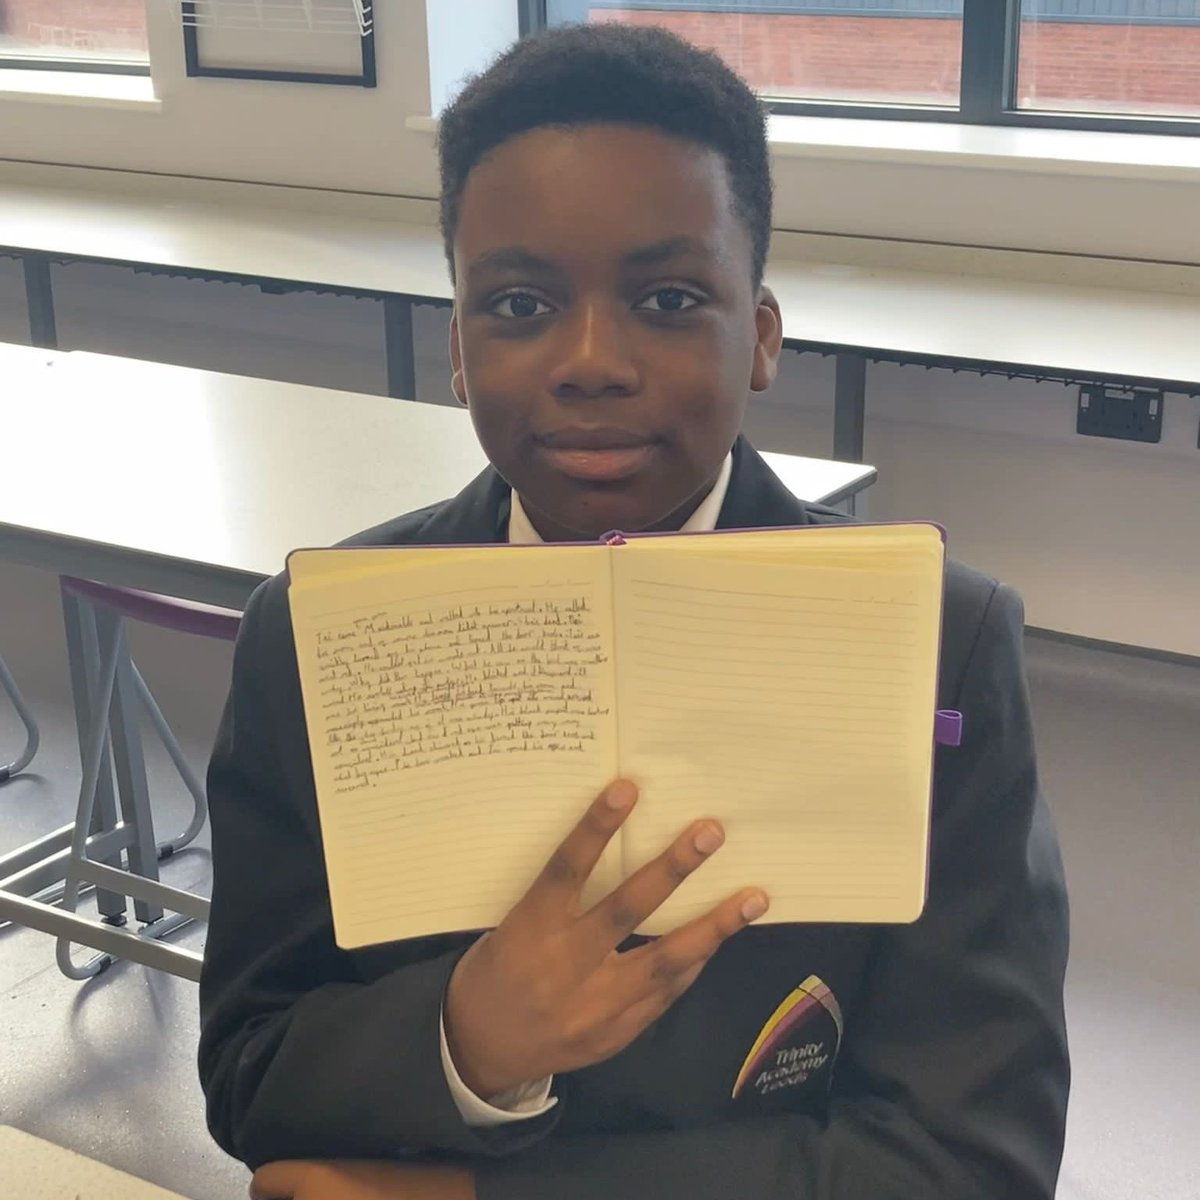 We love this glimpse into @MissBuryTeach's Creative Writing Involve club! ✍️✨ Our students have been writing some incredible pieces during their first half term at TAL ... We can't wait to read more when they get back 💜🙌 #CreativeWriting #HalfTerm #Year7